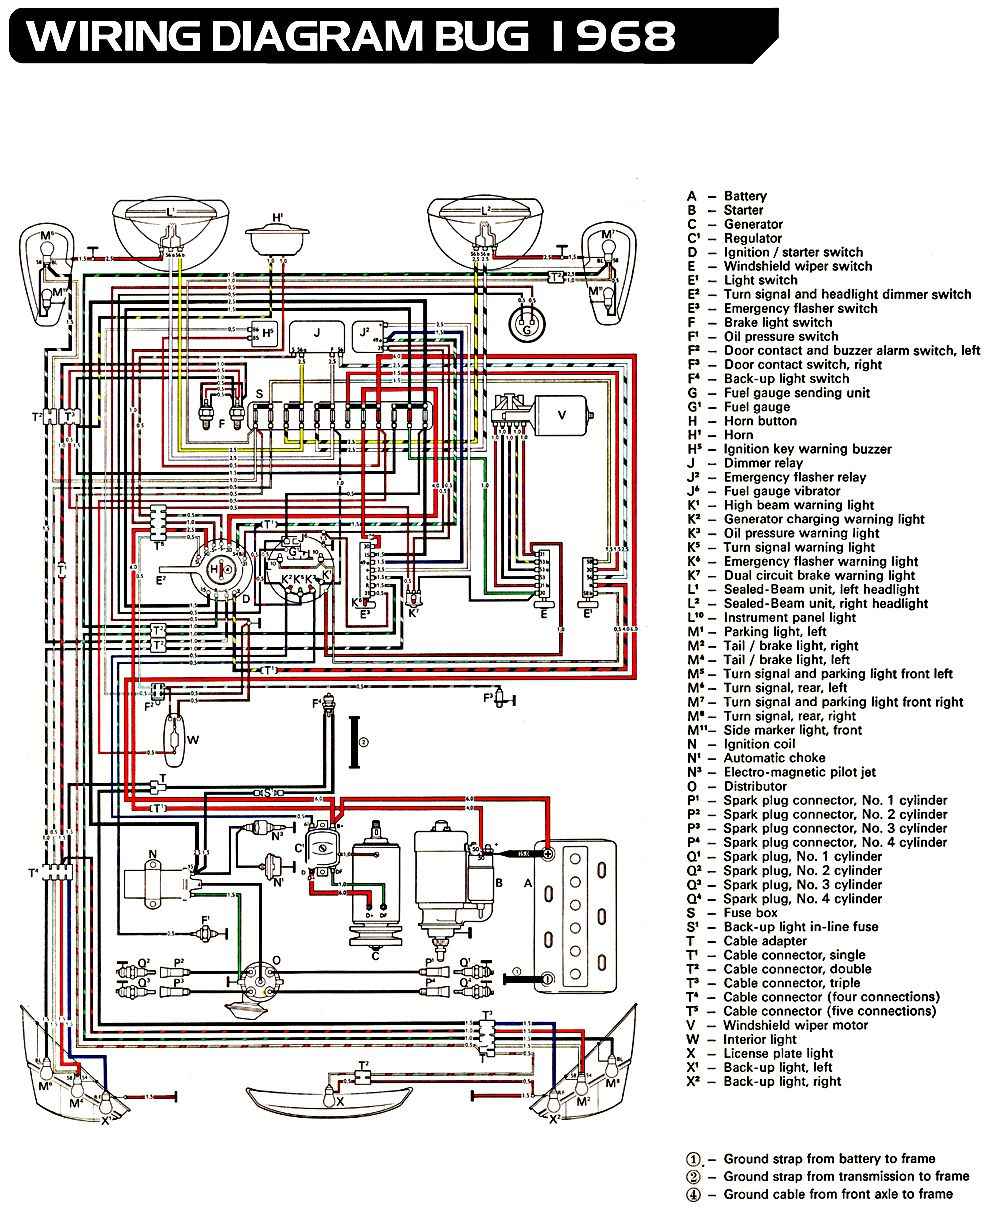 3a1908112d3826270ed5e3be362292bf vw bug ignition wiring diagram 73 vw wiring diagram free vw type 3 wiring harness at alyssarenee.co